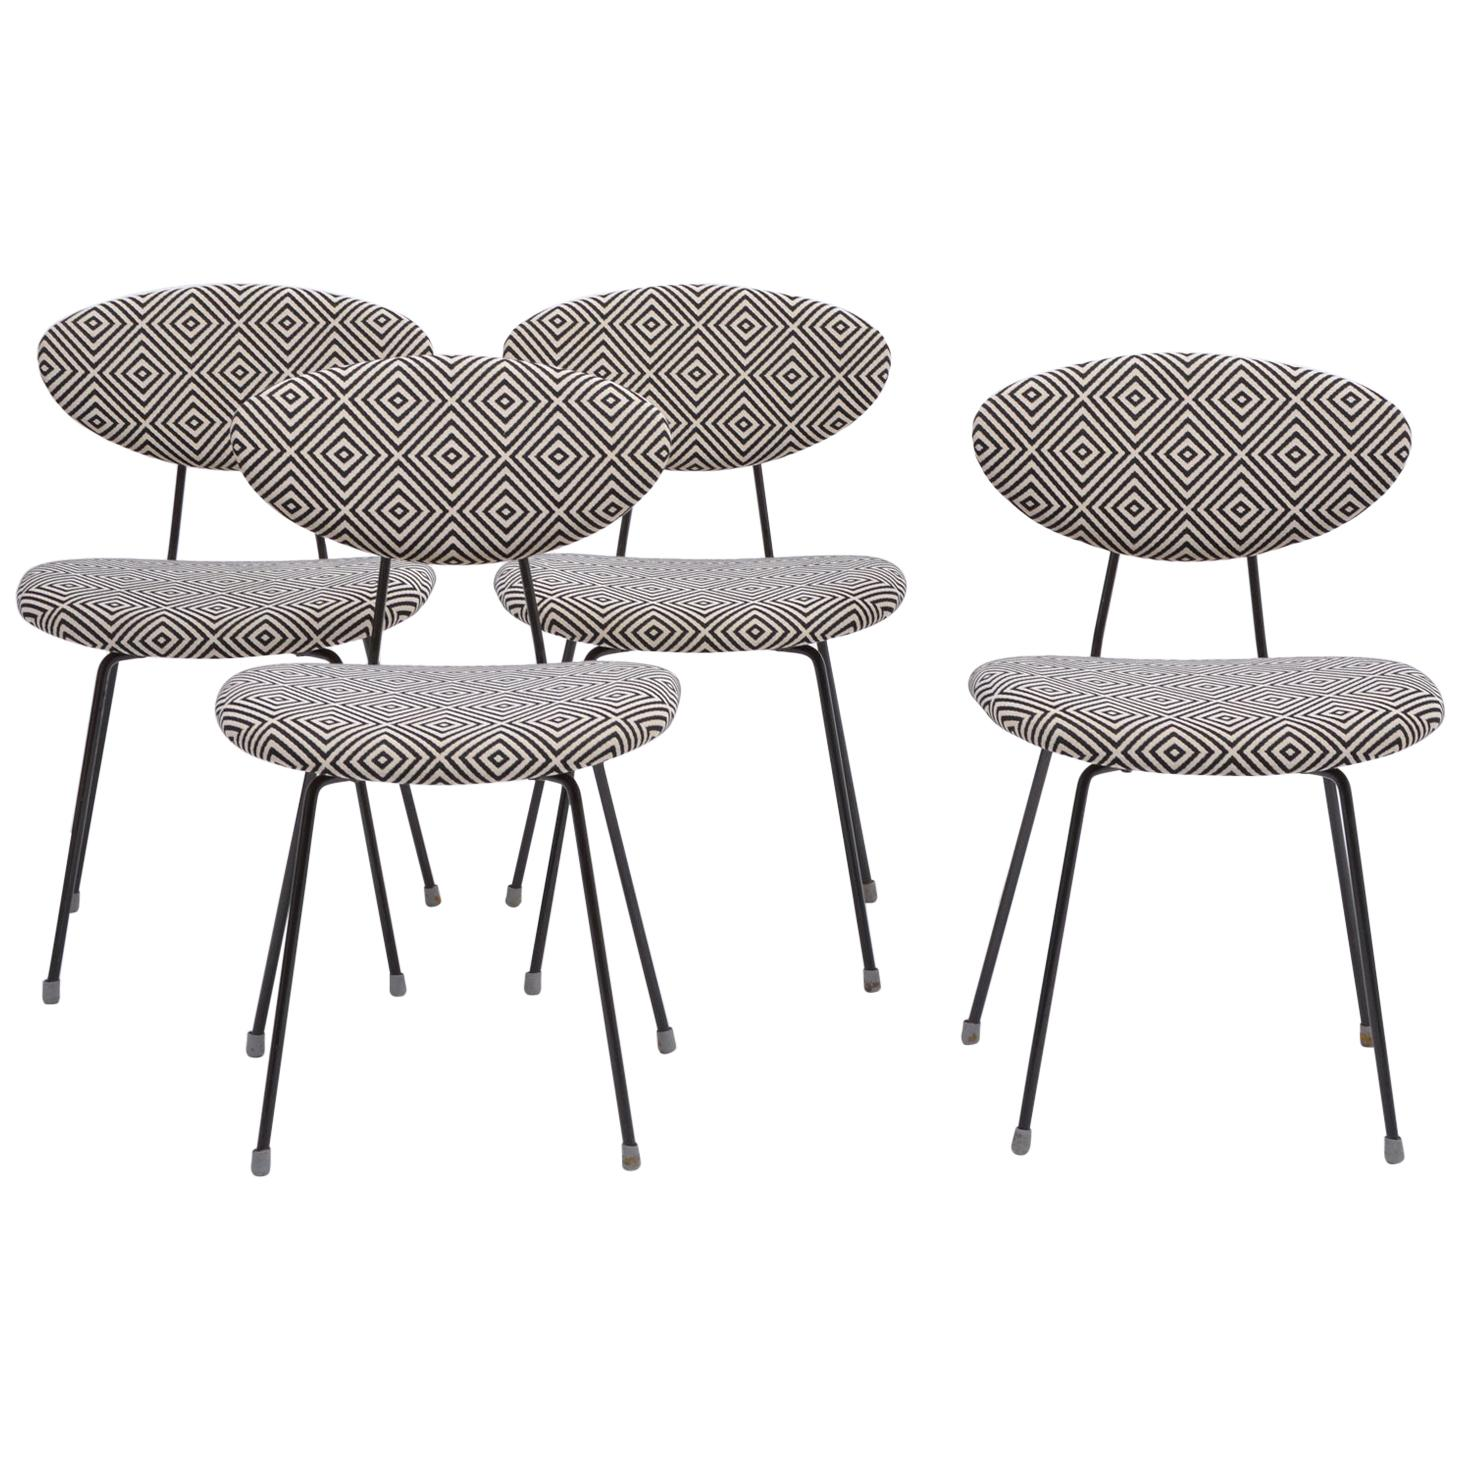 Set of Four Reupholstered Mid-Century Modern Dining Chairs by Rudolf Wolf